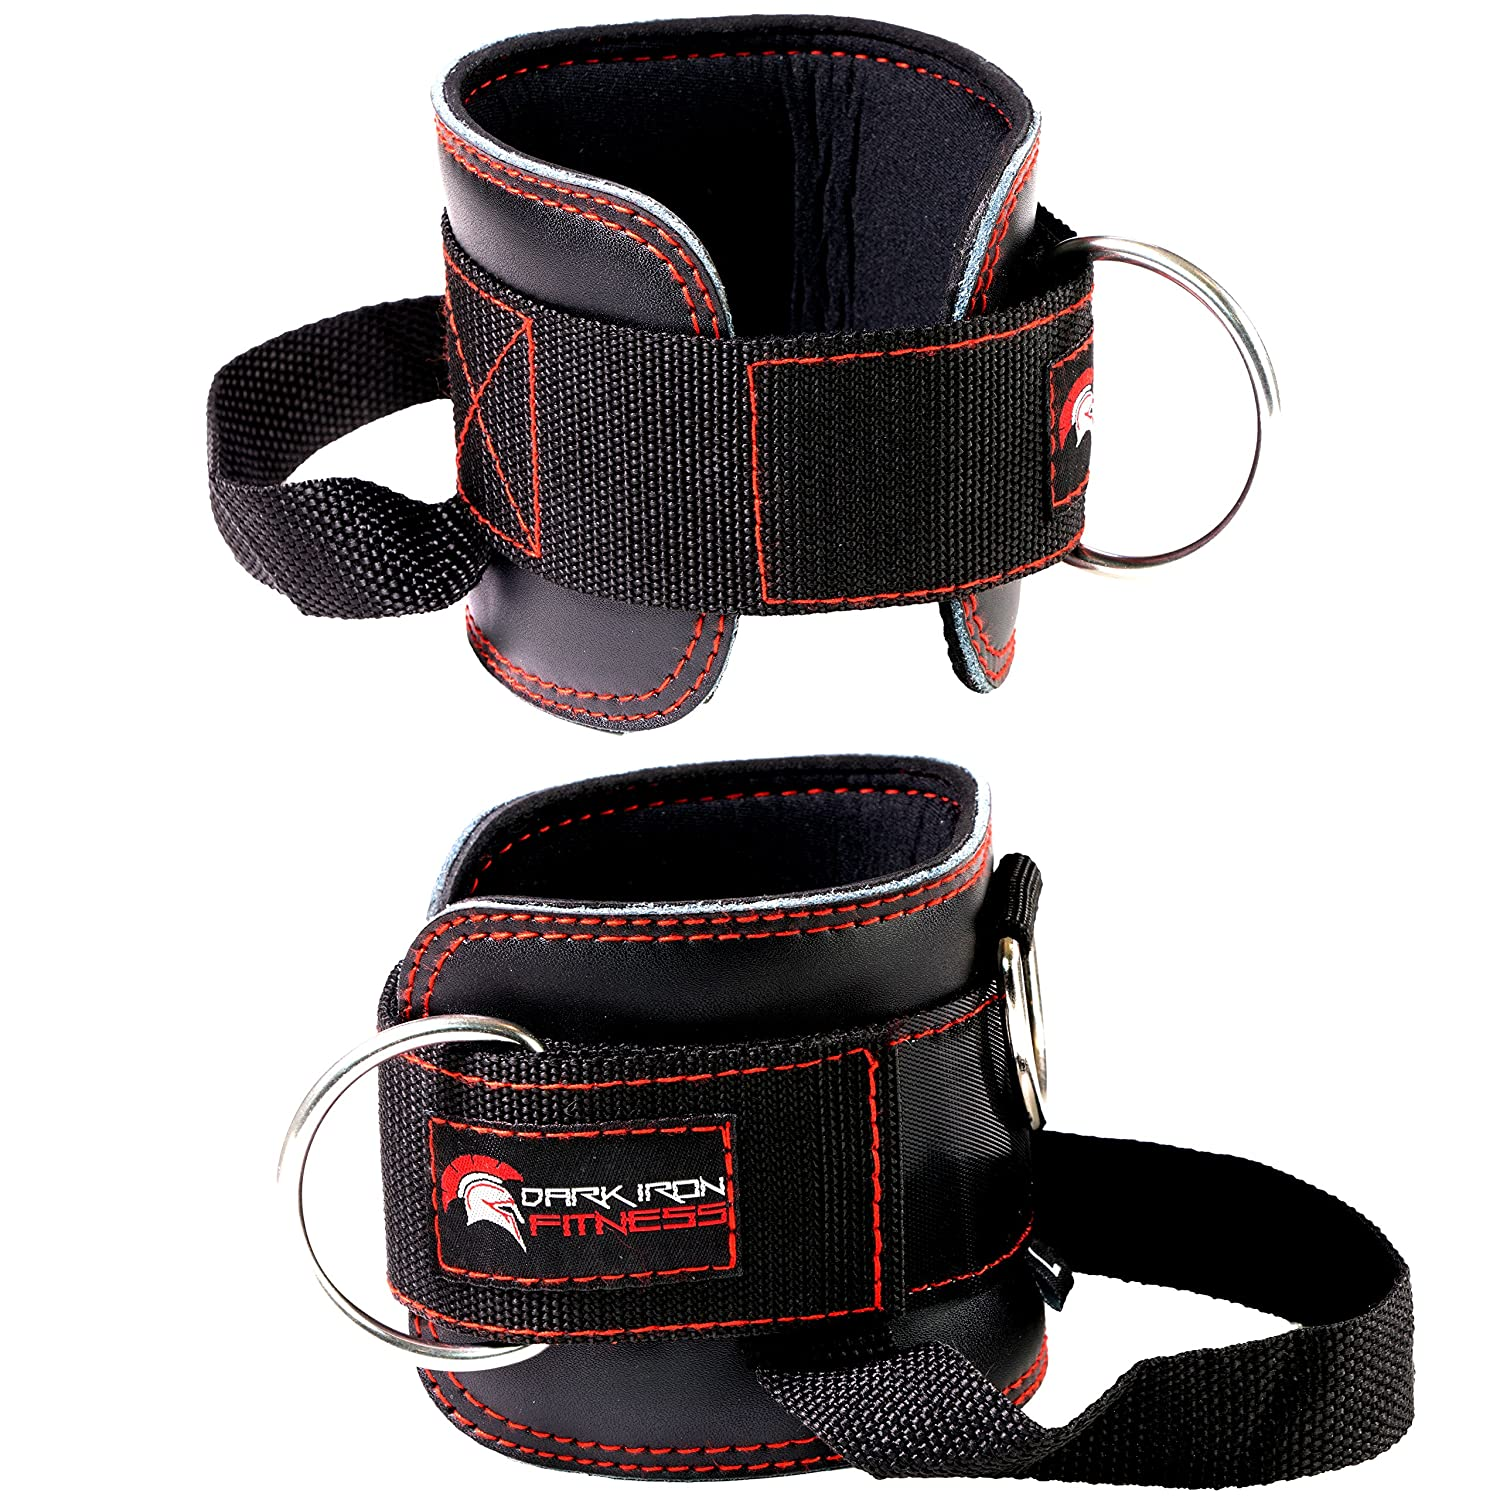 The Best Cable Exercises with an Ankle Strap - Dark Iron Fitness NEW Leather Ankle Strap